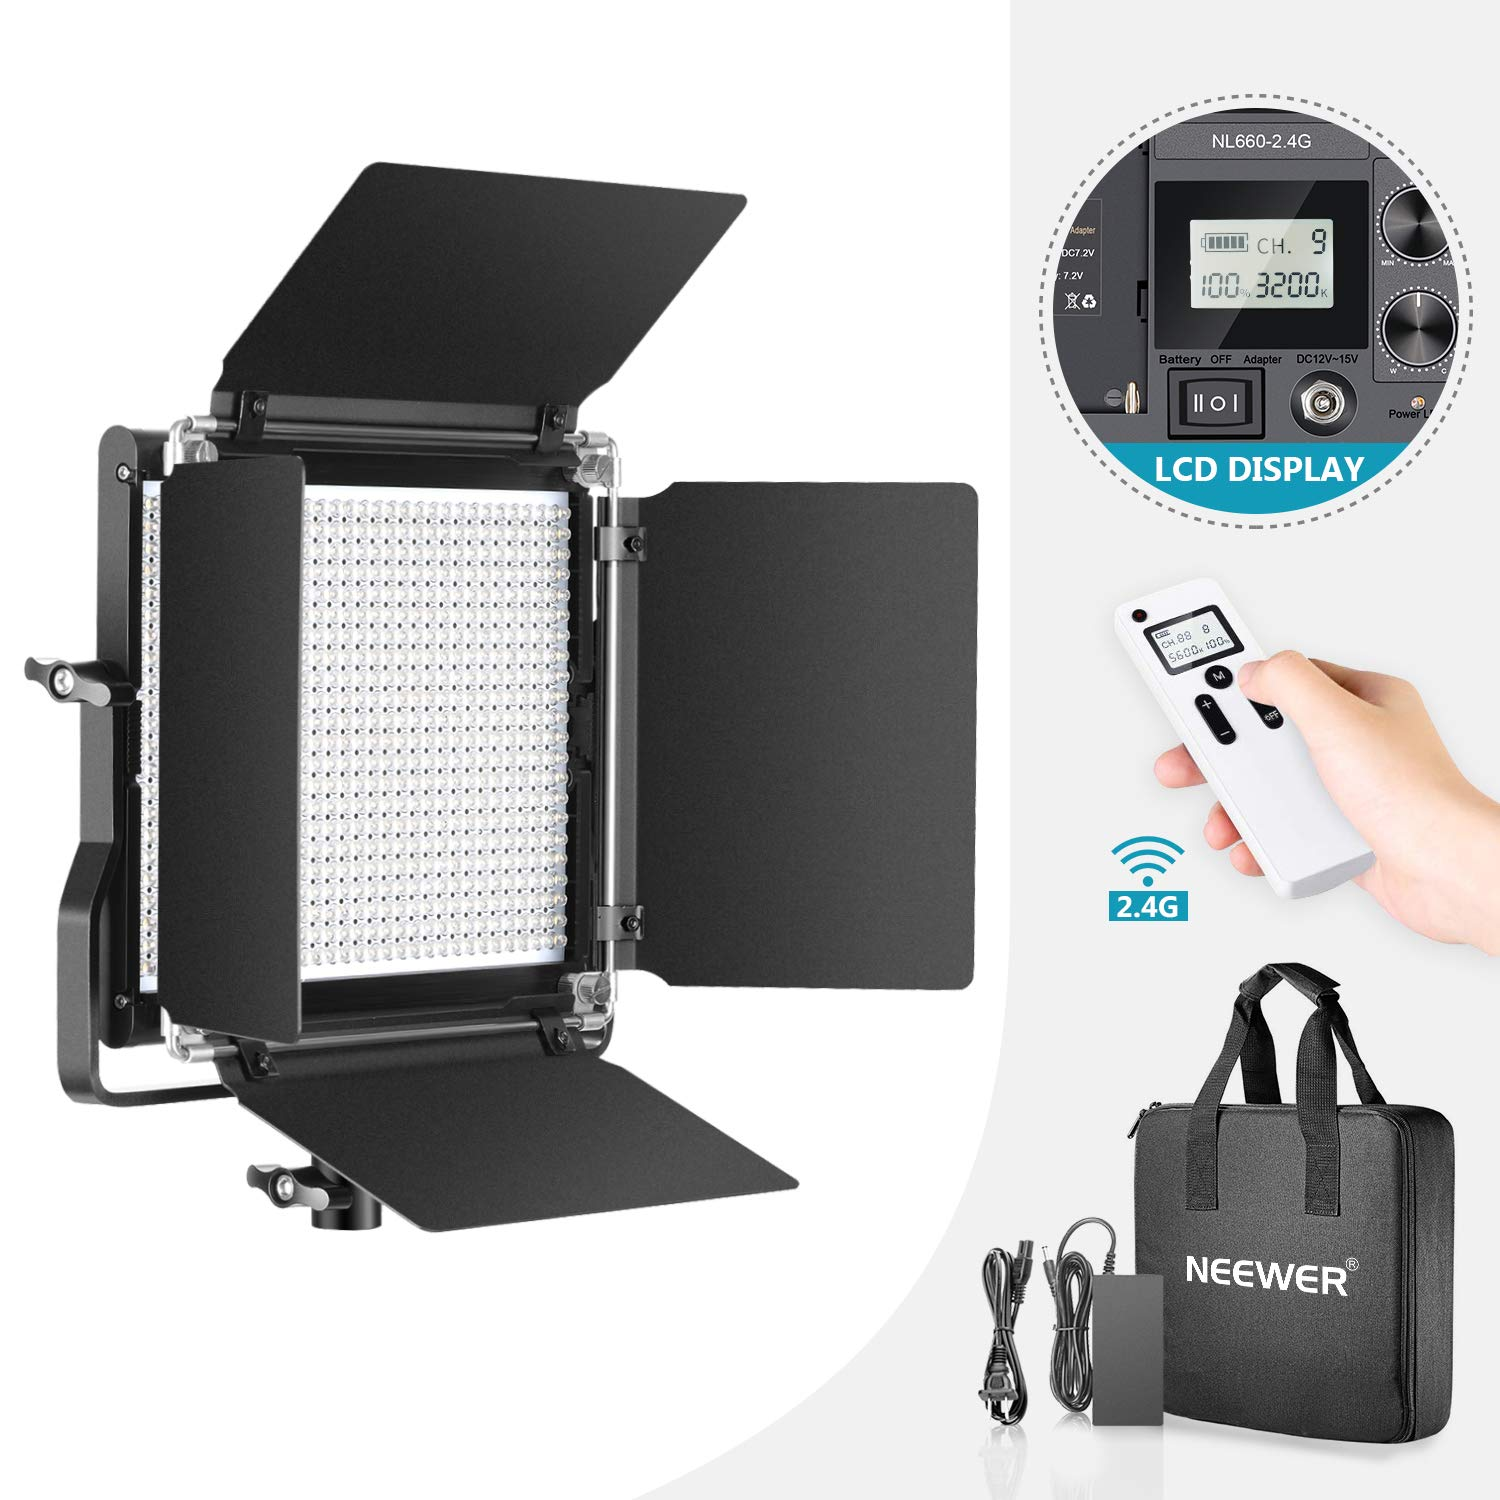 Neewer Advanced 2.4G 660 LED Video Light, Dimmable Bi-Color LED Panel with LCD Screen and 2.4G Wireless Remote for Portrait Product Photography, Studio Video Shooting with Metal U Bracket and Barndoor by Neewer